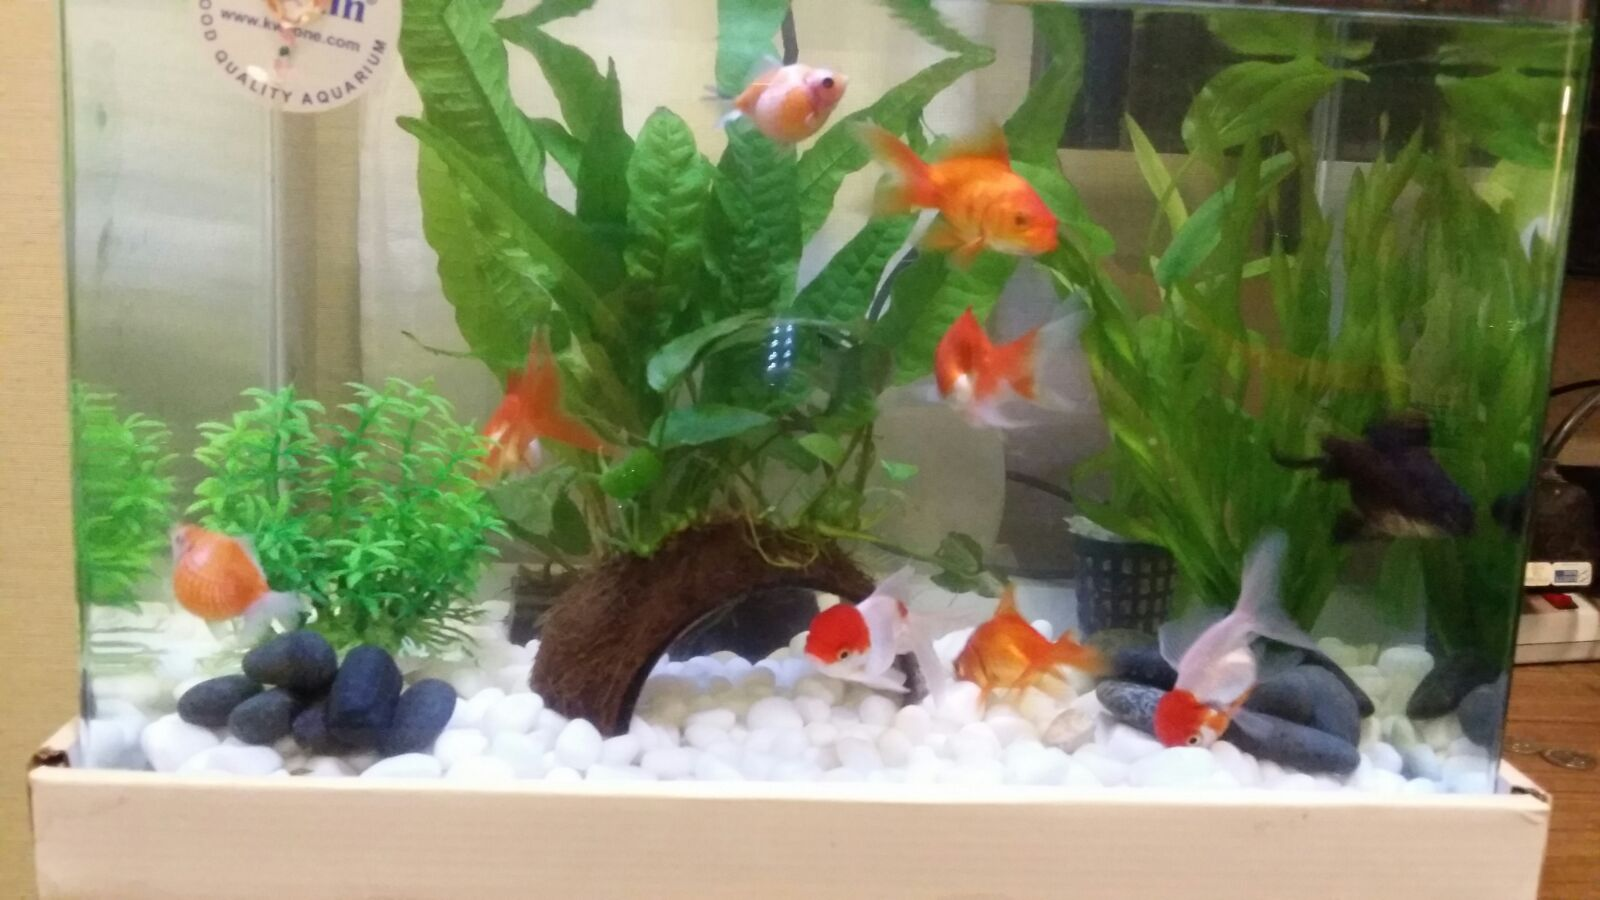 Fish tank for feng shui - In Feng Shui Numbers Are Always Important And It S Not Different When It Comes To The Popular Feng Shui Tool Of Fish You Can Use Fish Either In A Koi Pond